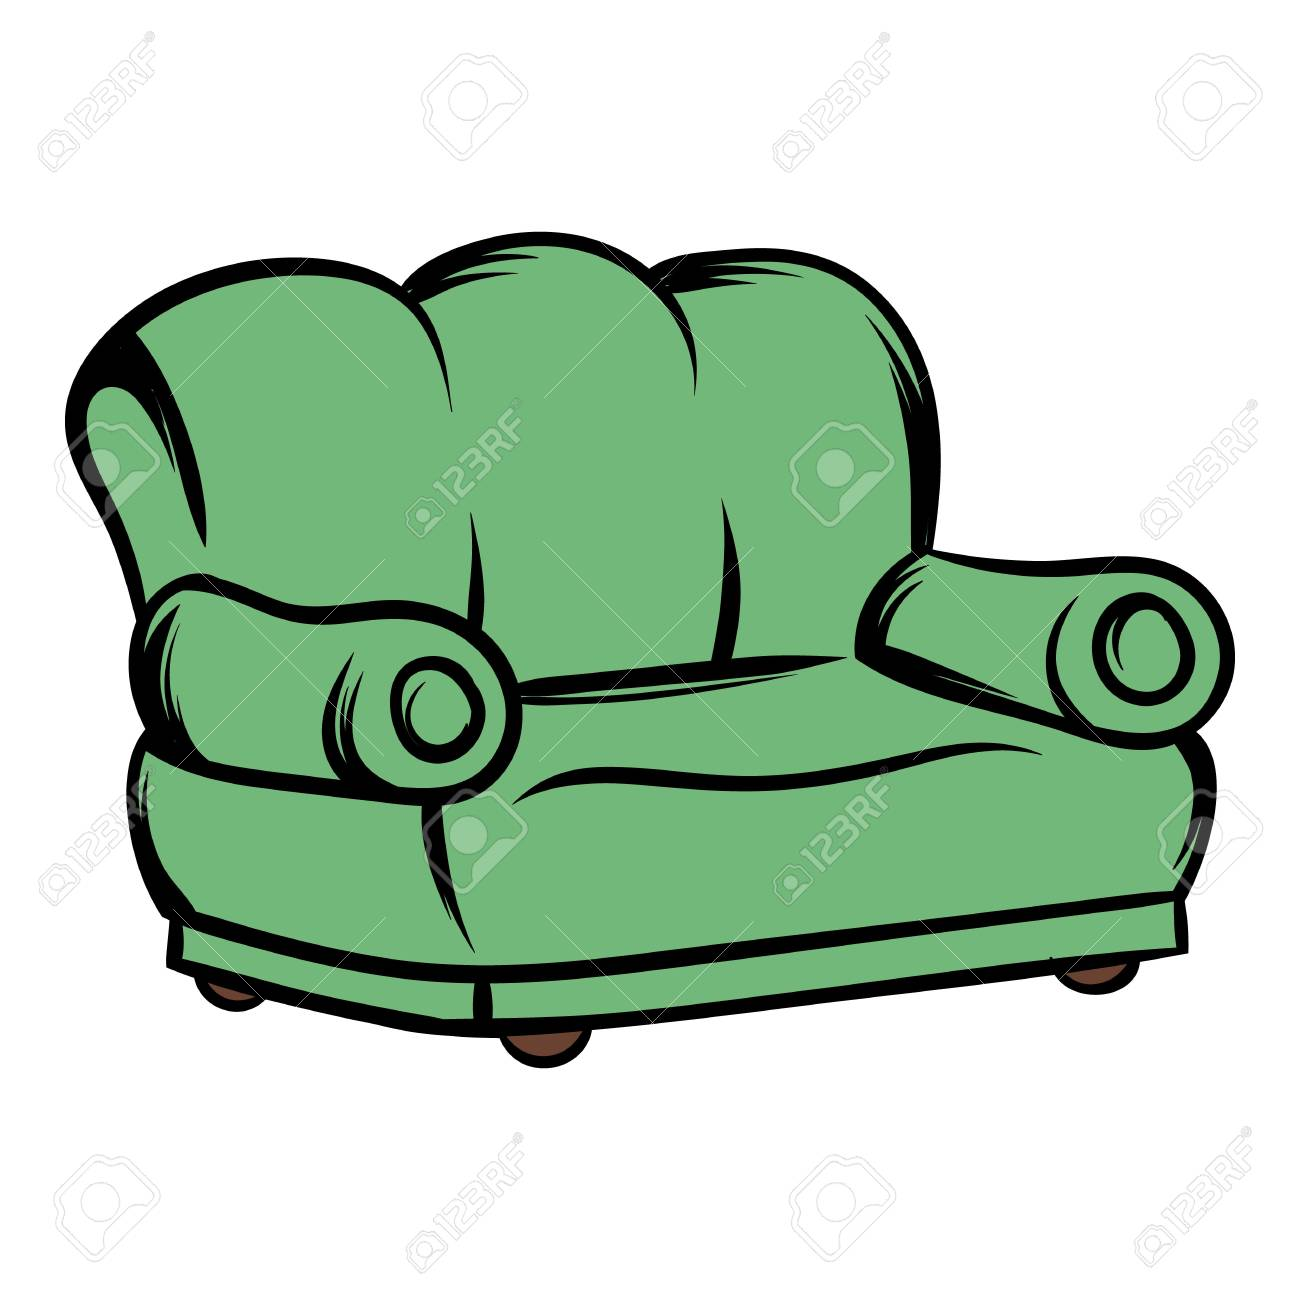 Green Sofa Icon Cartoon Royalty Free Cliparts Vectors And Stock